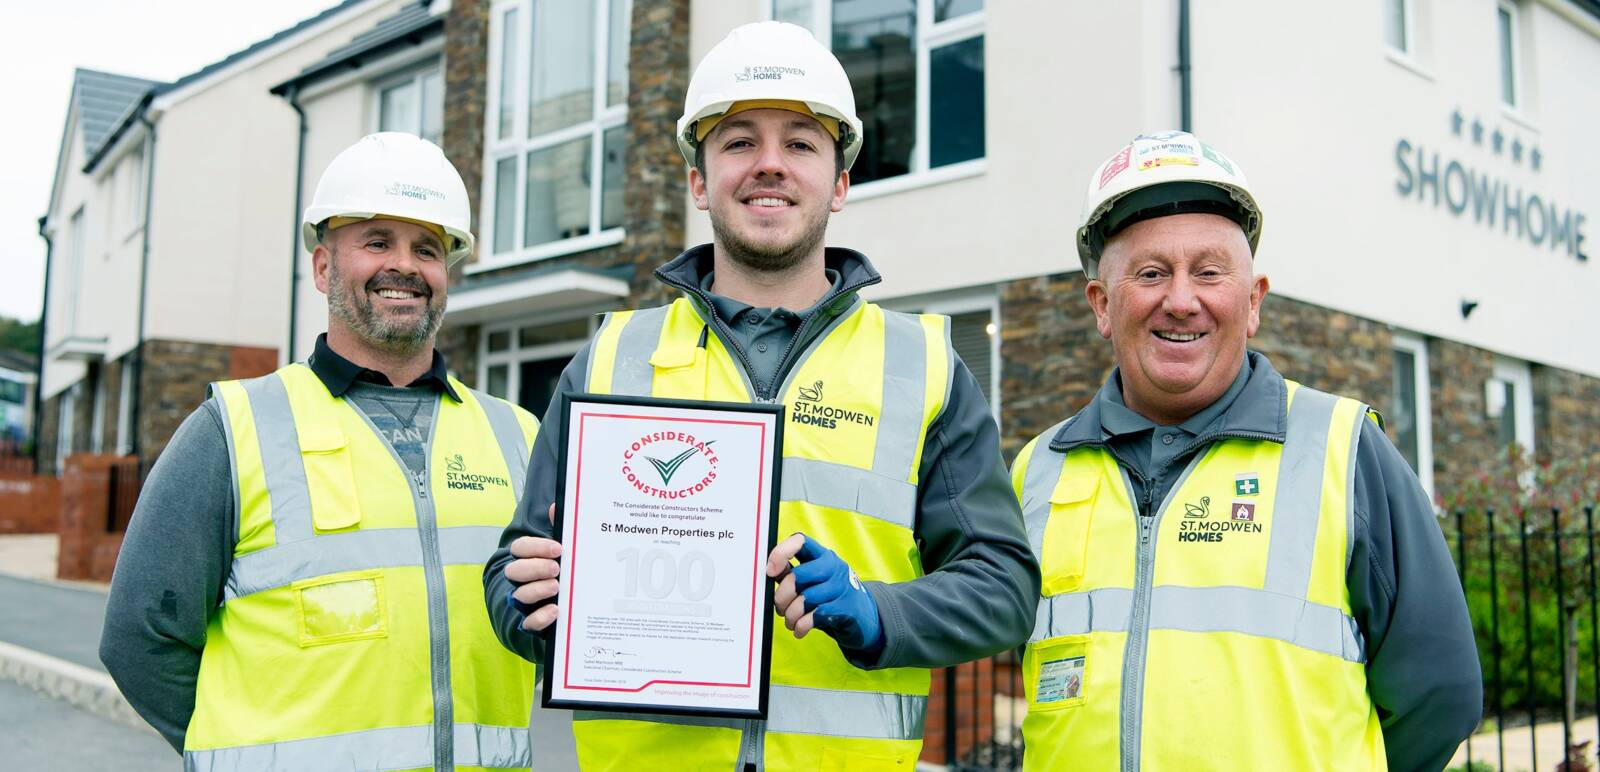 Considerate Constructors certificate